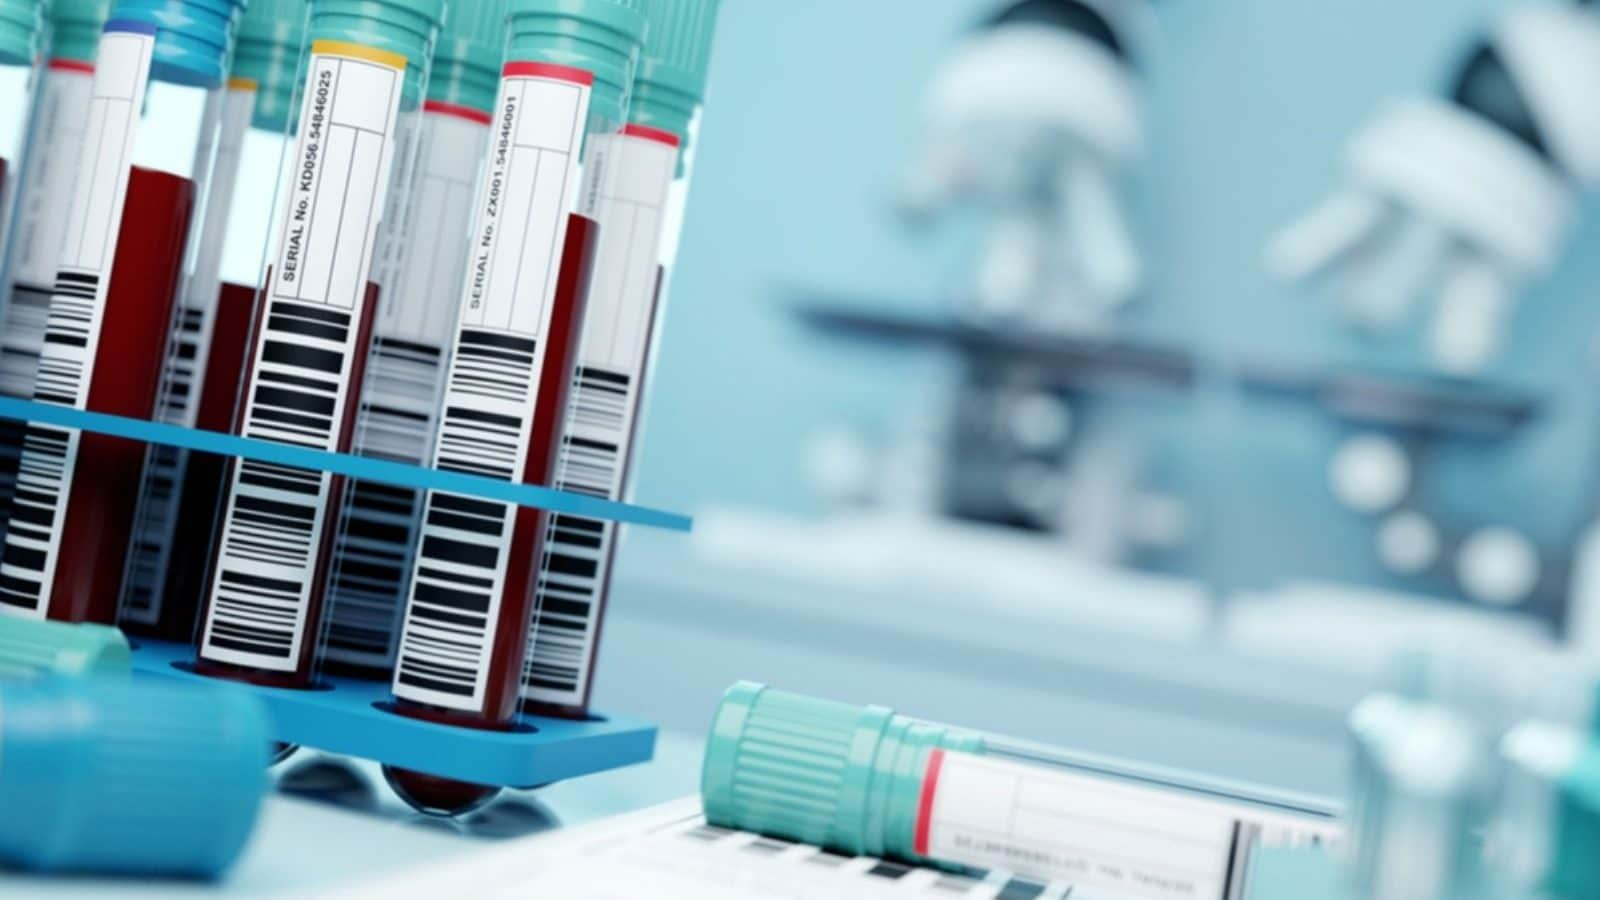 Blood Plasma Therapy Doesn't Help Seriously Ill Covid-19 Patients: Study